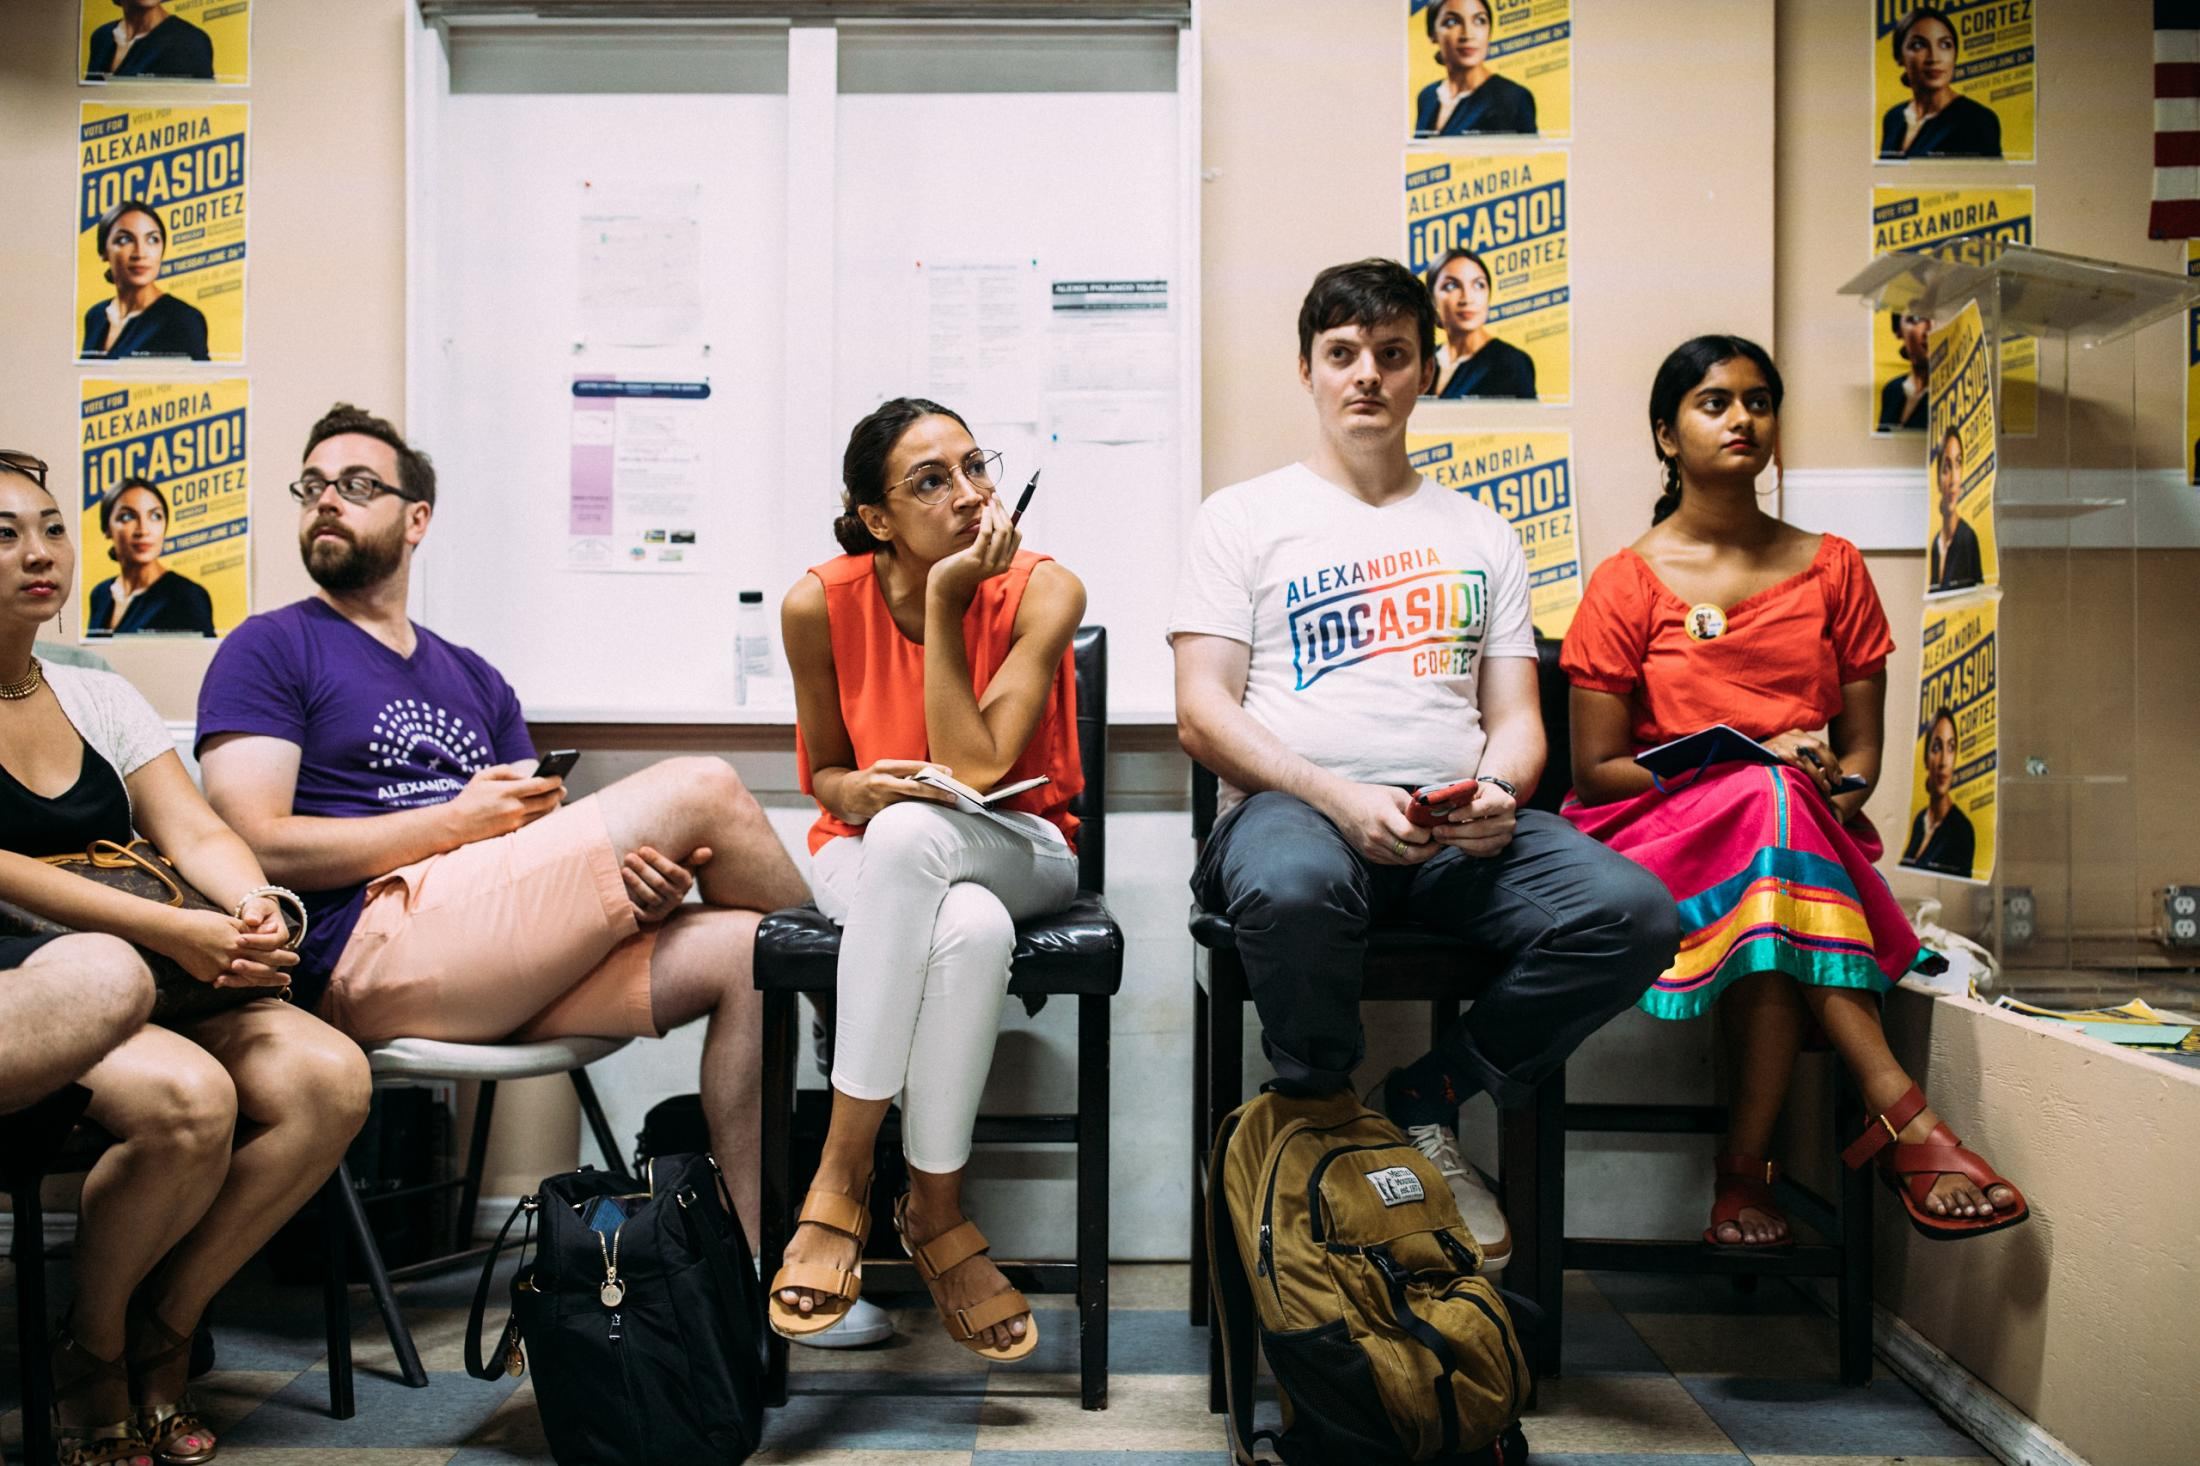 Congressional candidate Alexandria Ocasio-Cortez sits and listens to the concerns of her Queens constituents at a town hall forum in Corona, in the Queens borough of New York City, August 12, 2018.